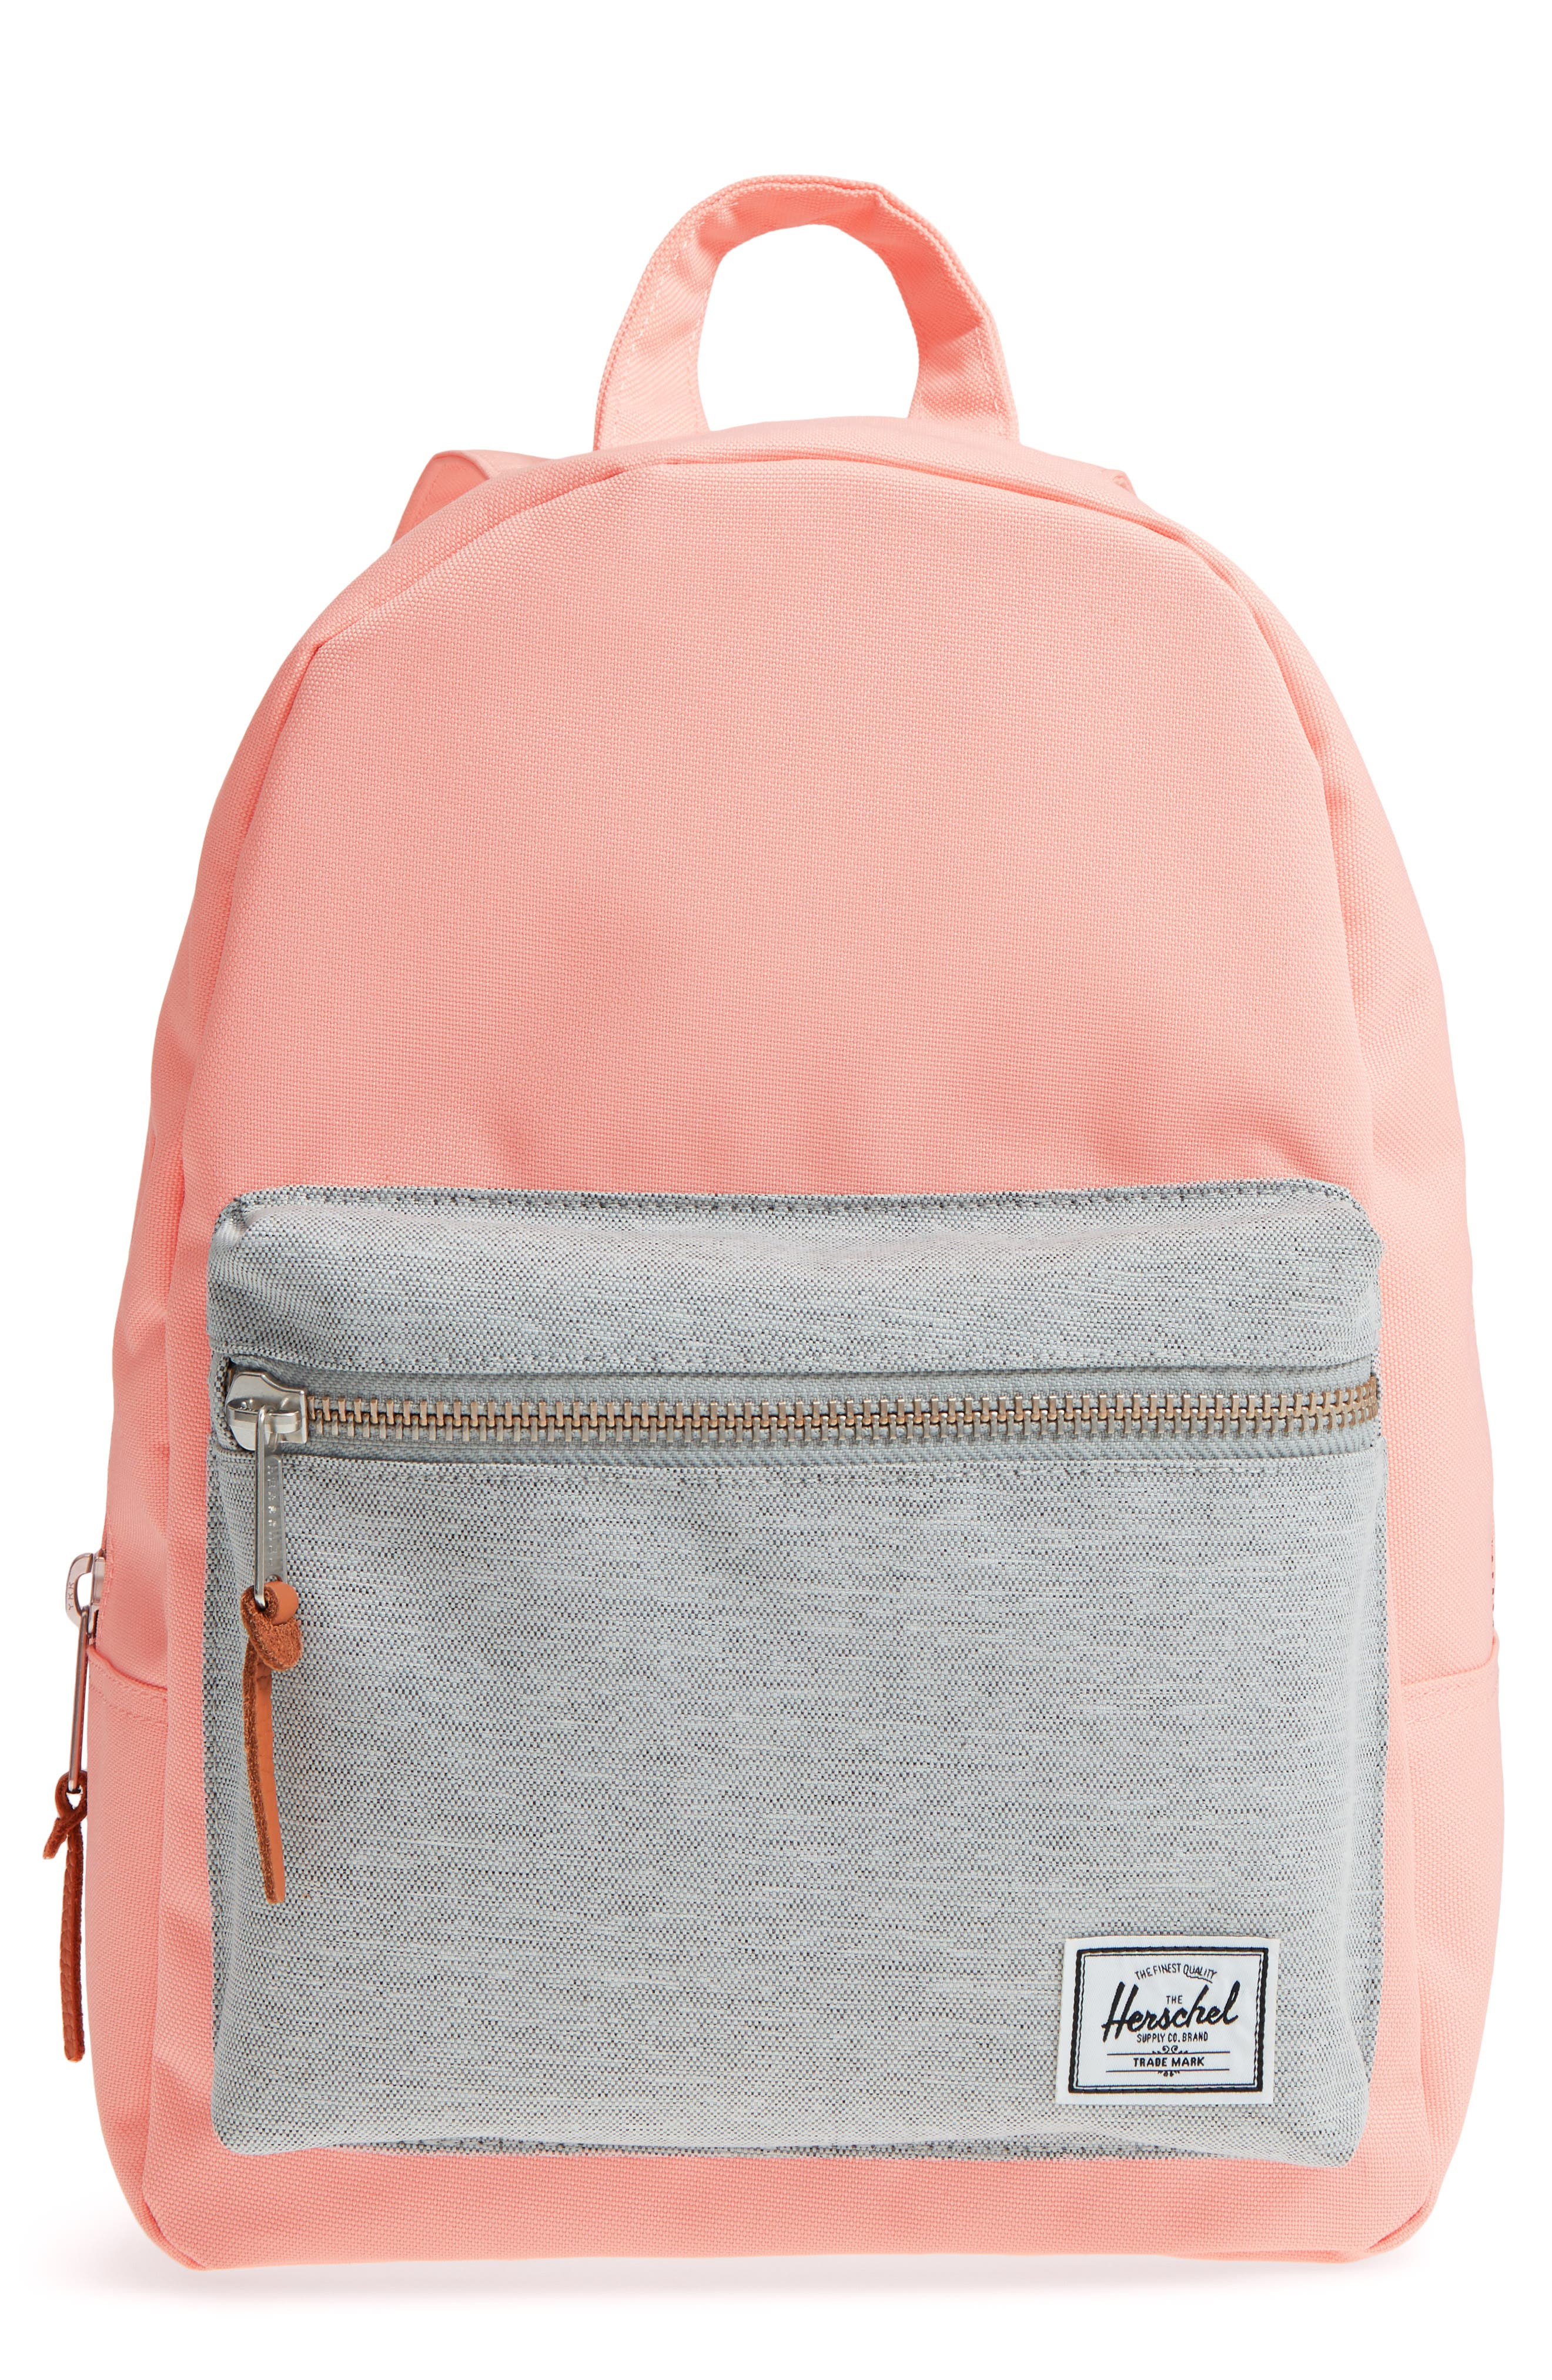 X-Small Grove Canvas Backpack,                         Main,                         color, Peach/ Light Grey